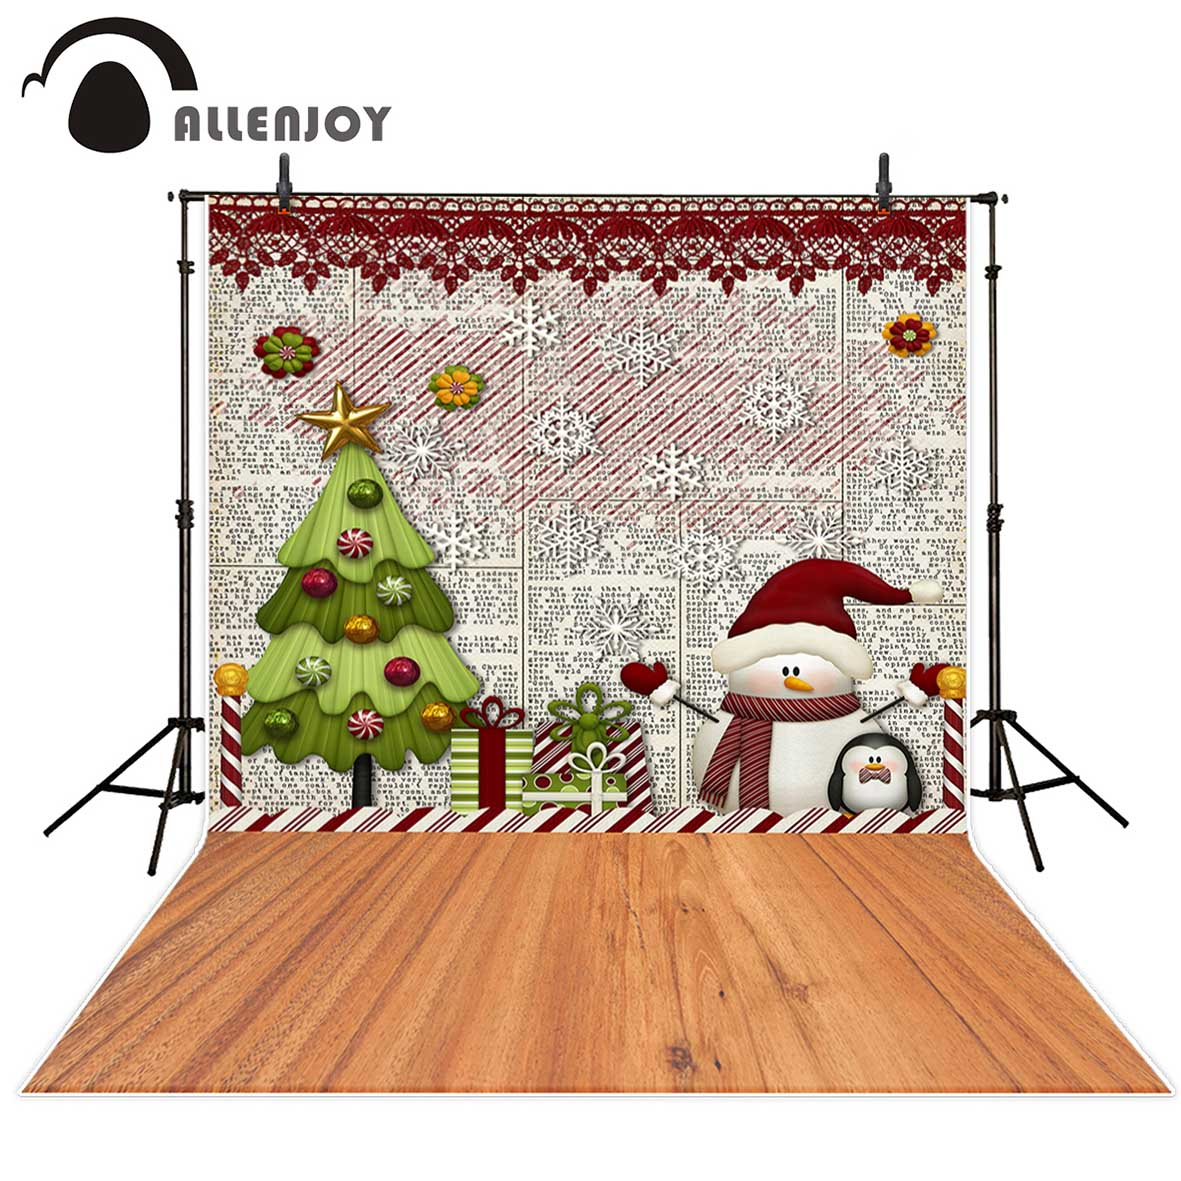 Allenjoy photography background Christmas tree snowman gifts snowflake wood floor backdrop Photo studio camera fotografica